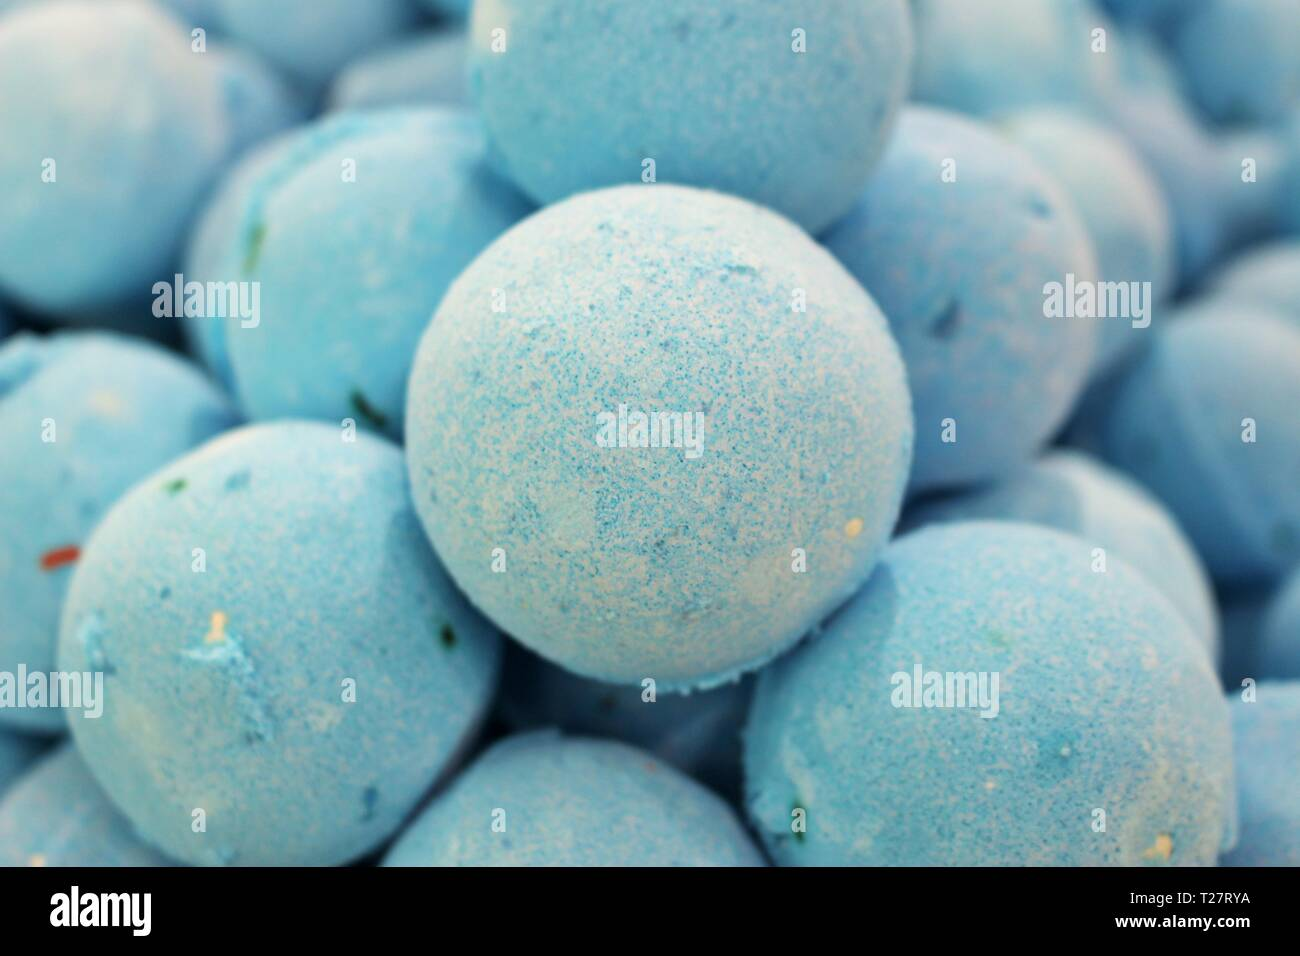 Close up photo of a stack of large, blue bath bombs at a wellness spa - Stock Image